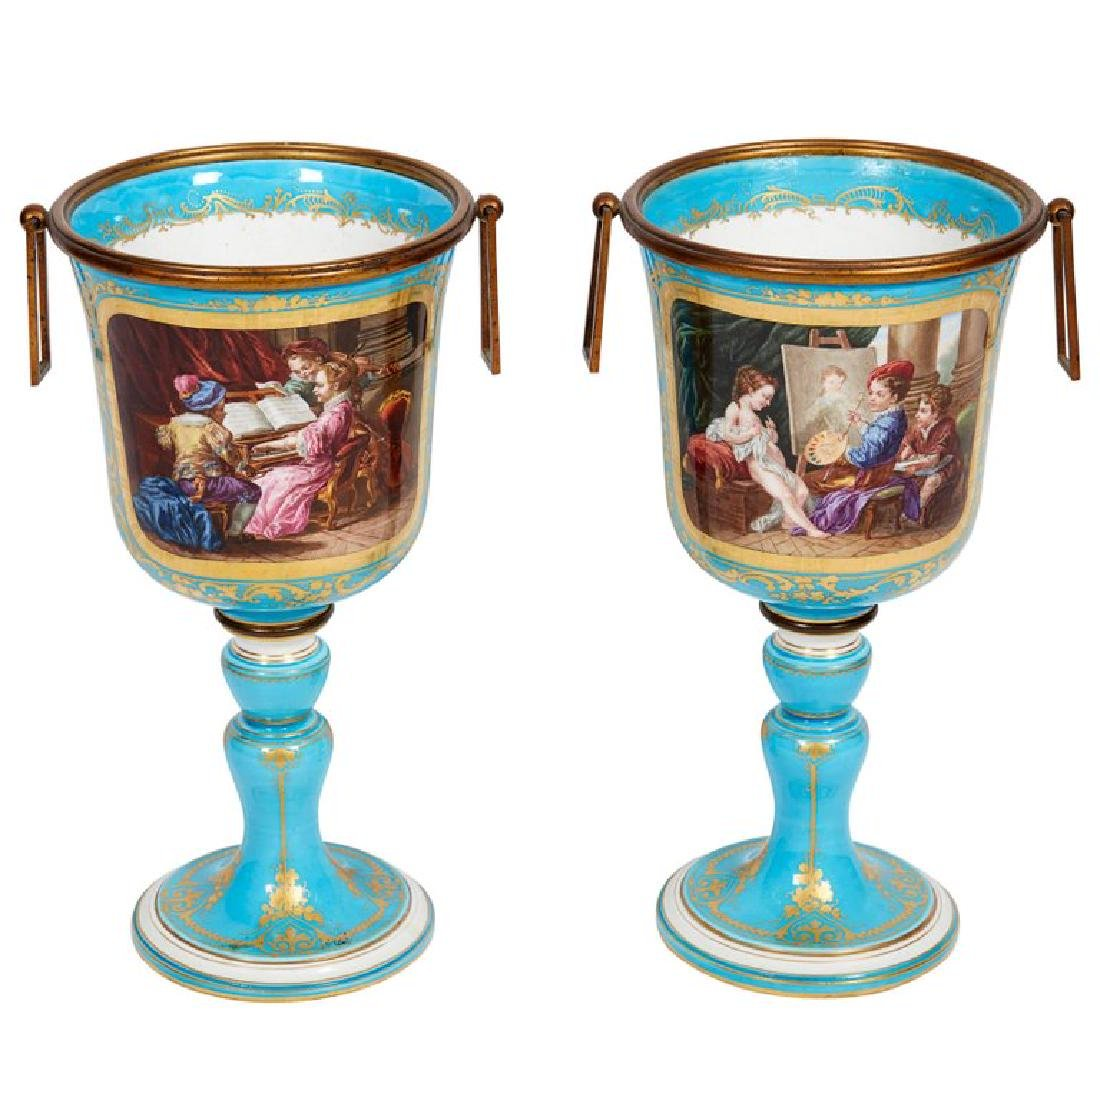 Pair of French Sevres Style Turquoise Porcelain Cups or